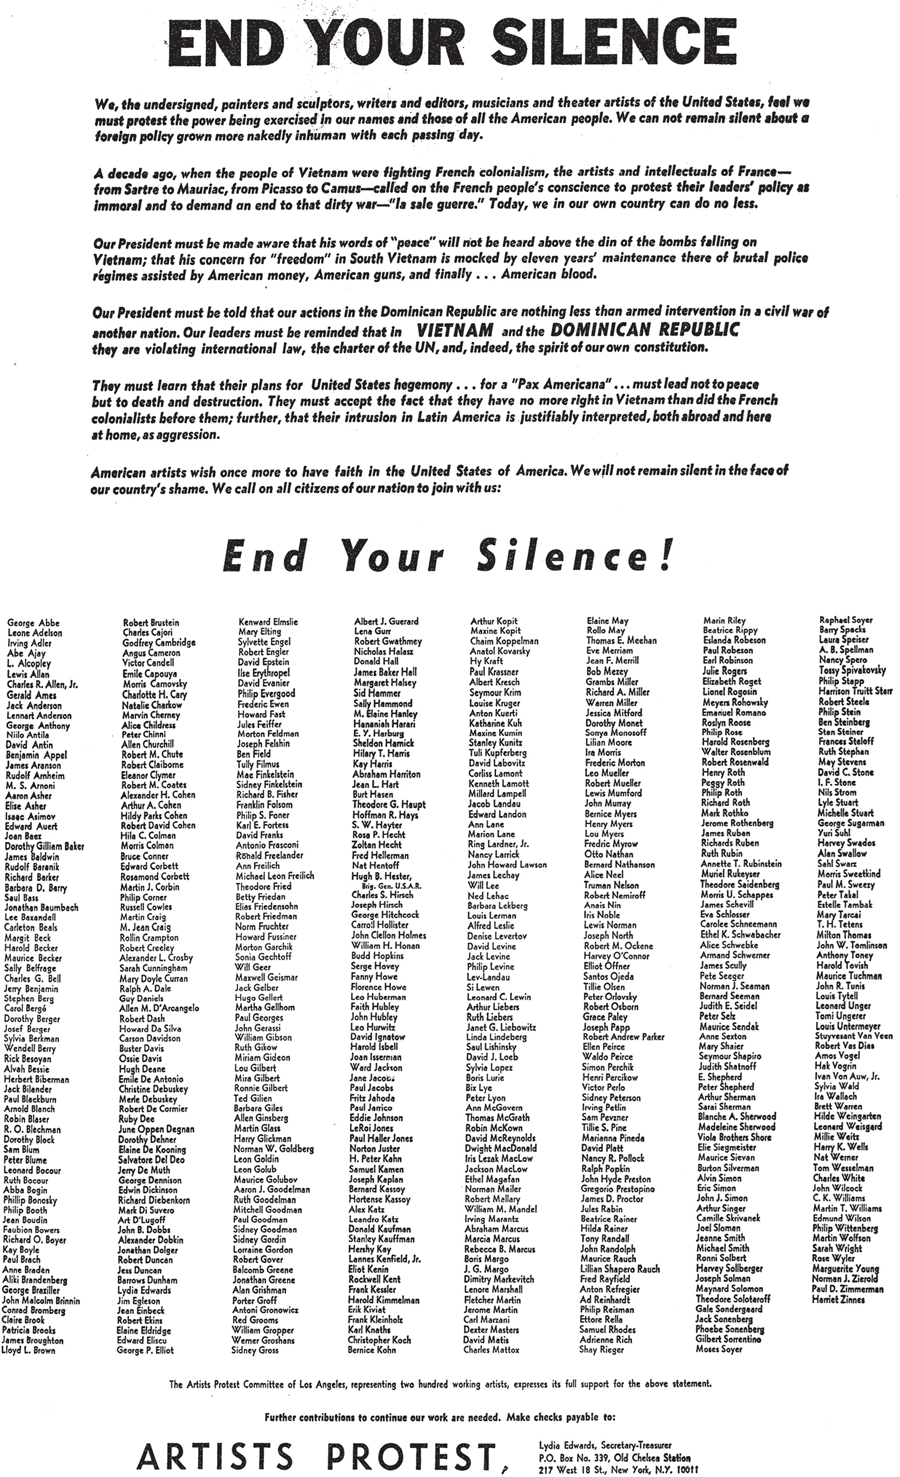 Artists and Writers Protest, End Your Silence, New York Times, 27.06.1965